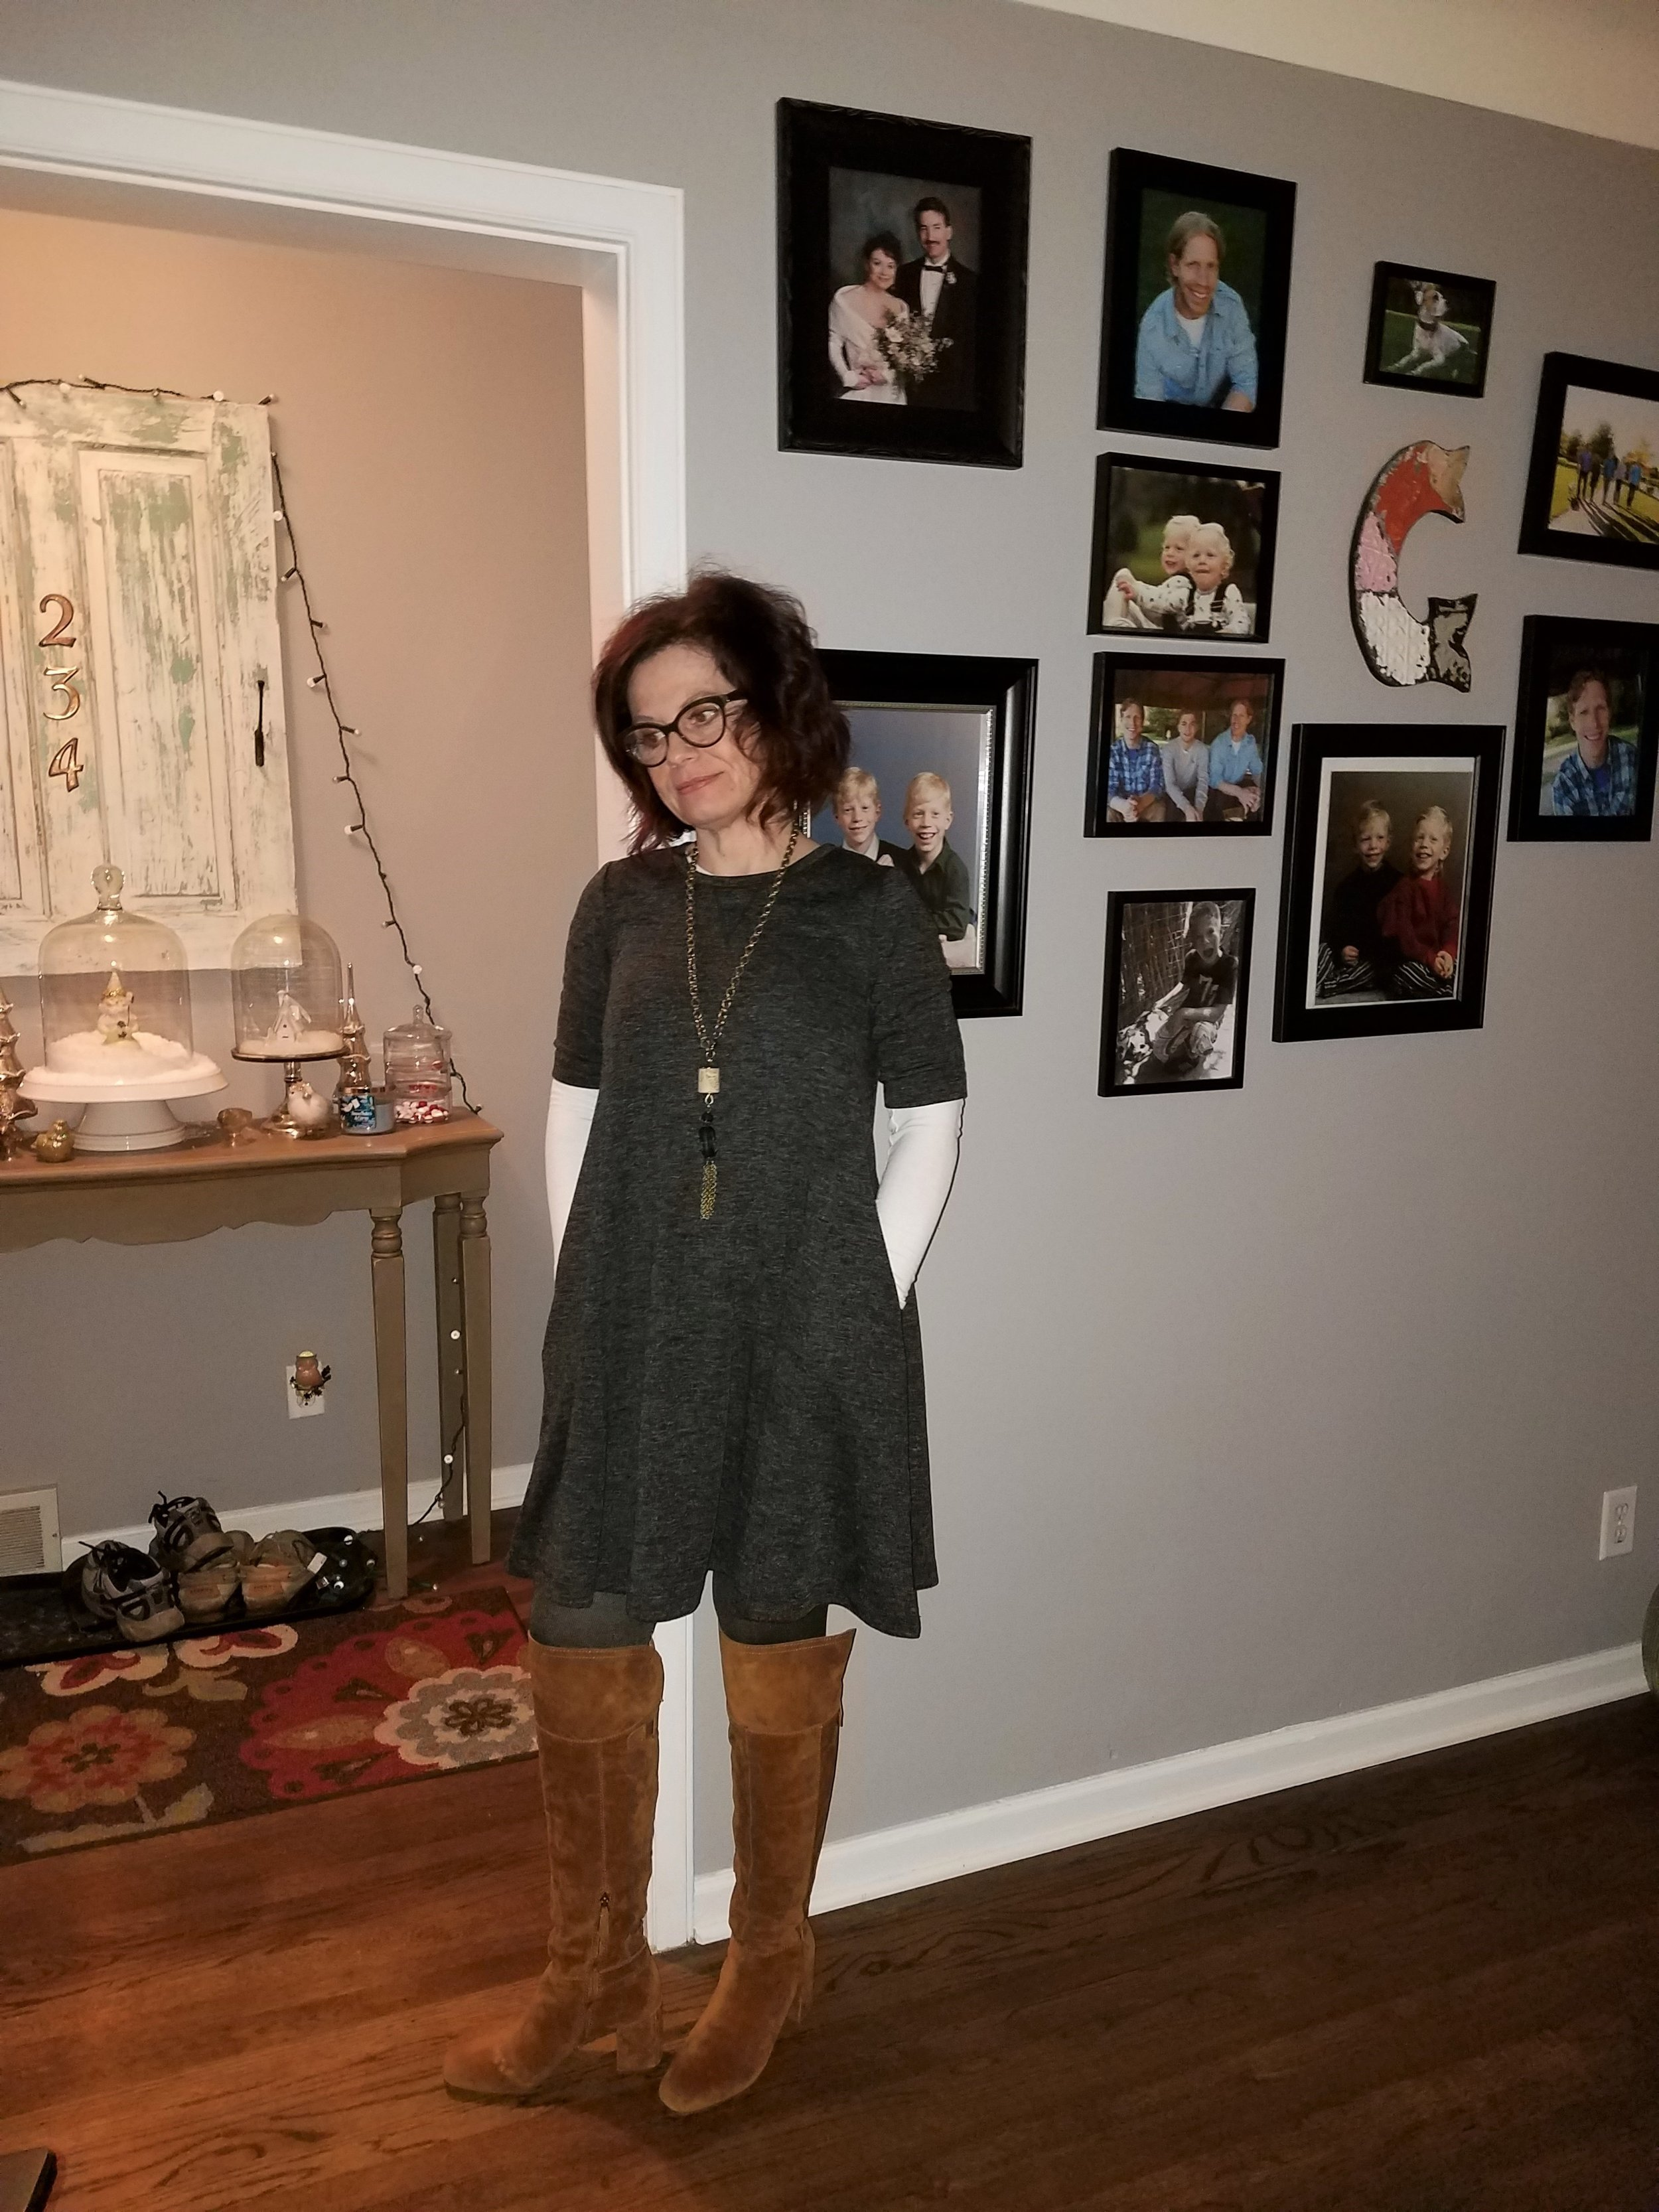 This is a short, A-line dress from Andrea Jovine that I purchased recently at TJ Maxx for less than 30 bucks! I wear opaque tights and over the knee boots with it. I would not wear a dress this short without opaque tights. In the spring I may pair this with a pair of cropped leggings and flats or booties. A woman under 30 I feel, could wear this shorter length with bare legs and make it look great.